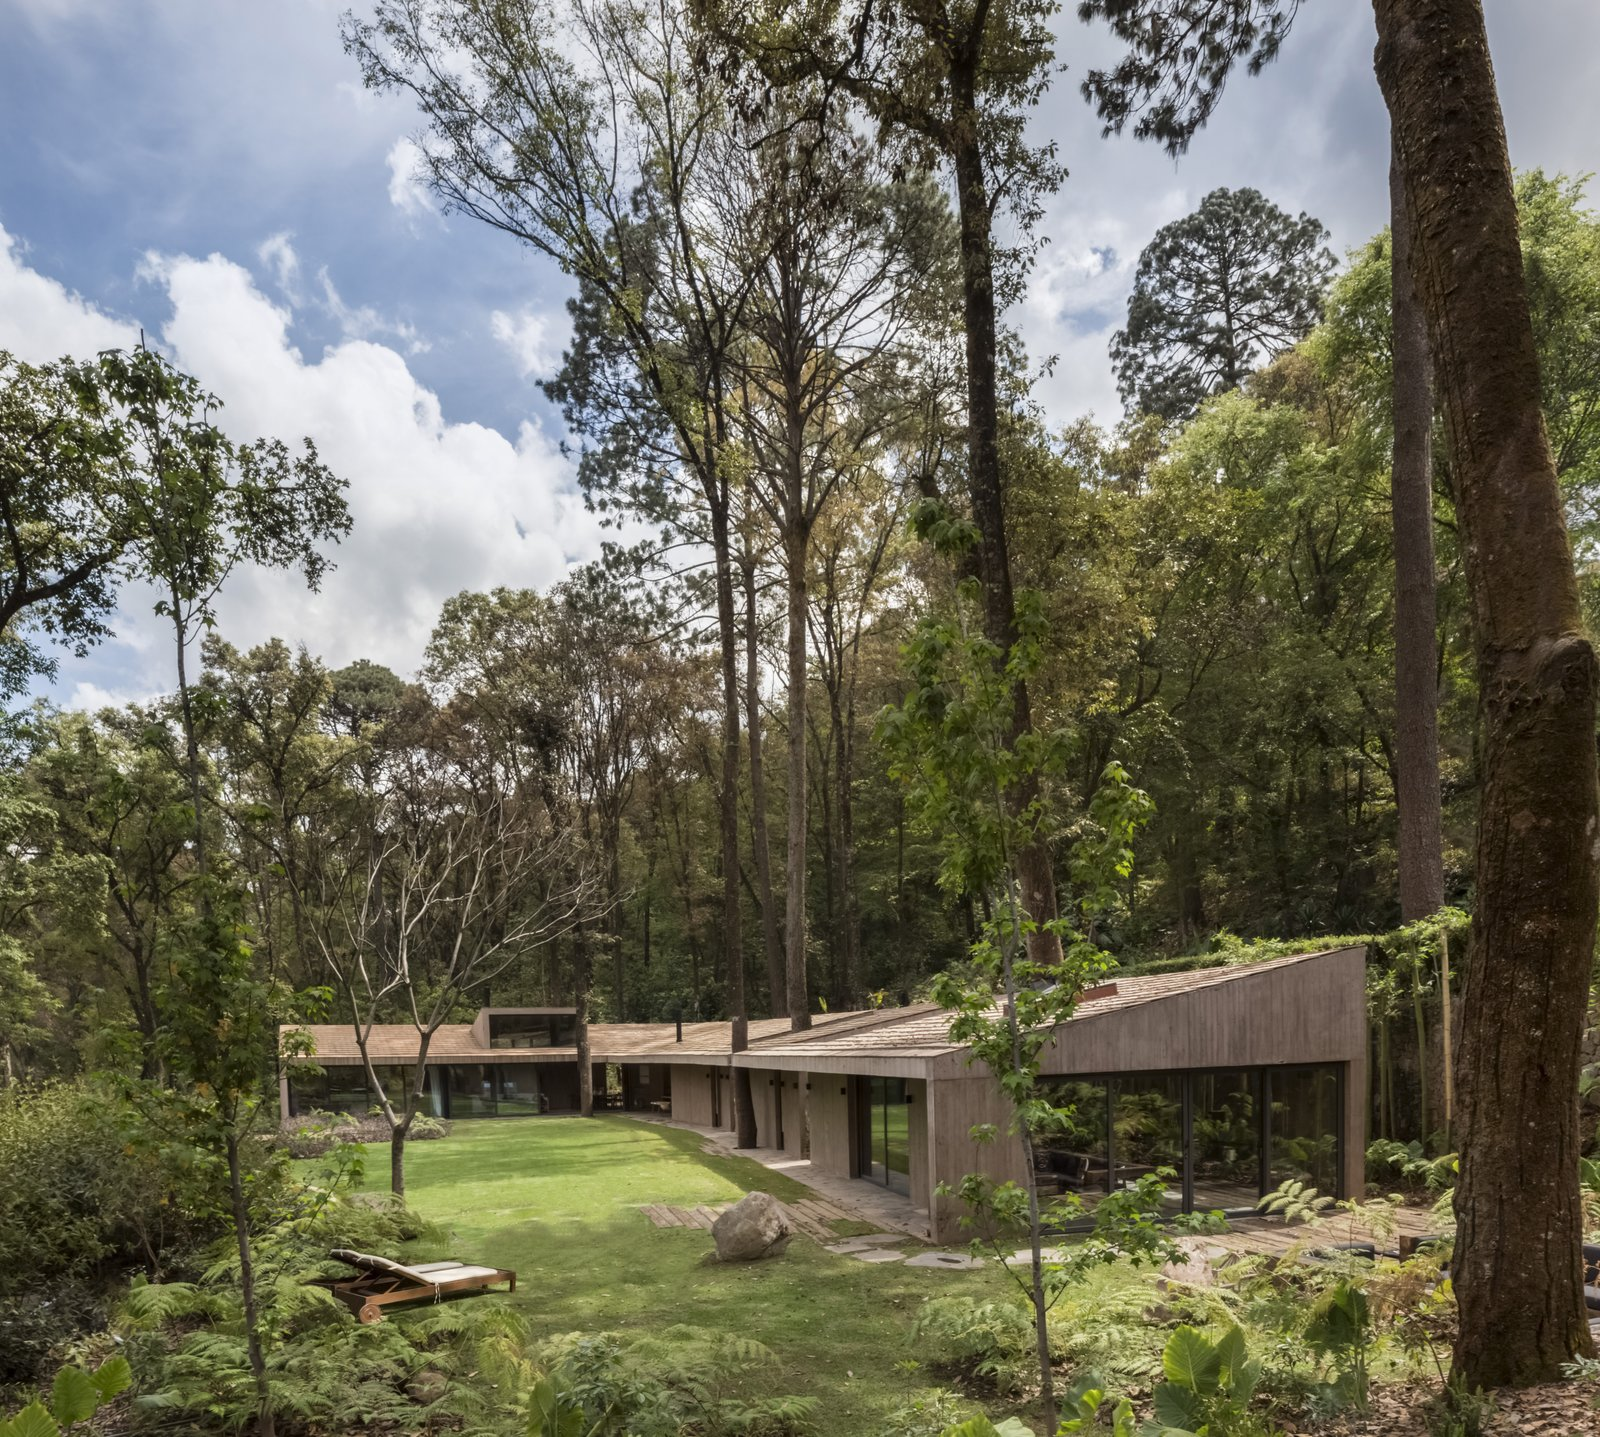 A Modern Home Embraces Nature With a Unique L-Shaped Design - Dwell